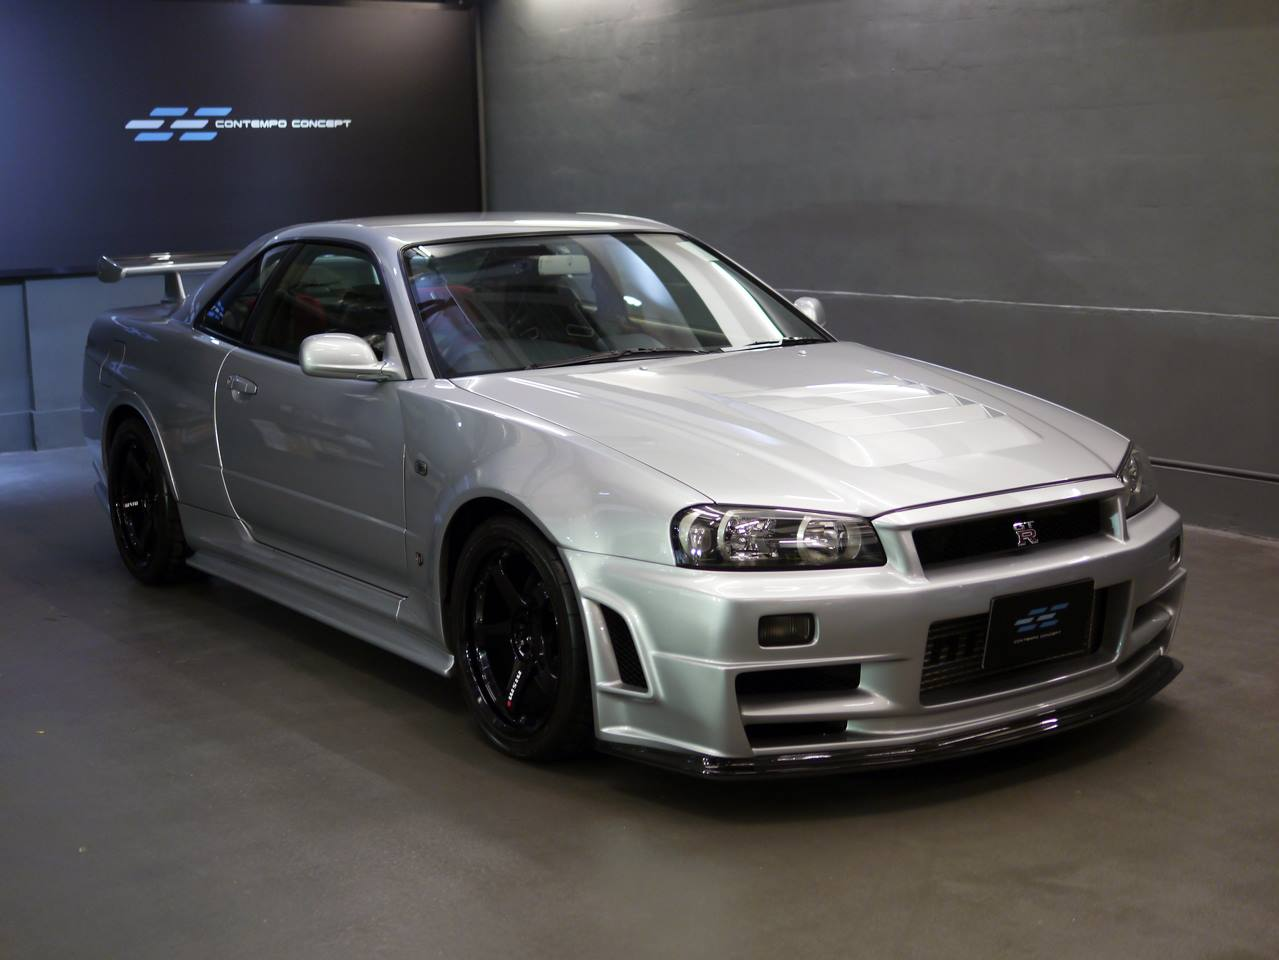 Nissan Skyline Gtr For Sale >> Nissan Skyline Gtr Nismo For Sale At 510 000 In Hong Kong